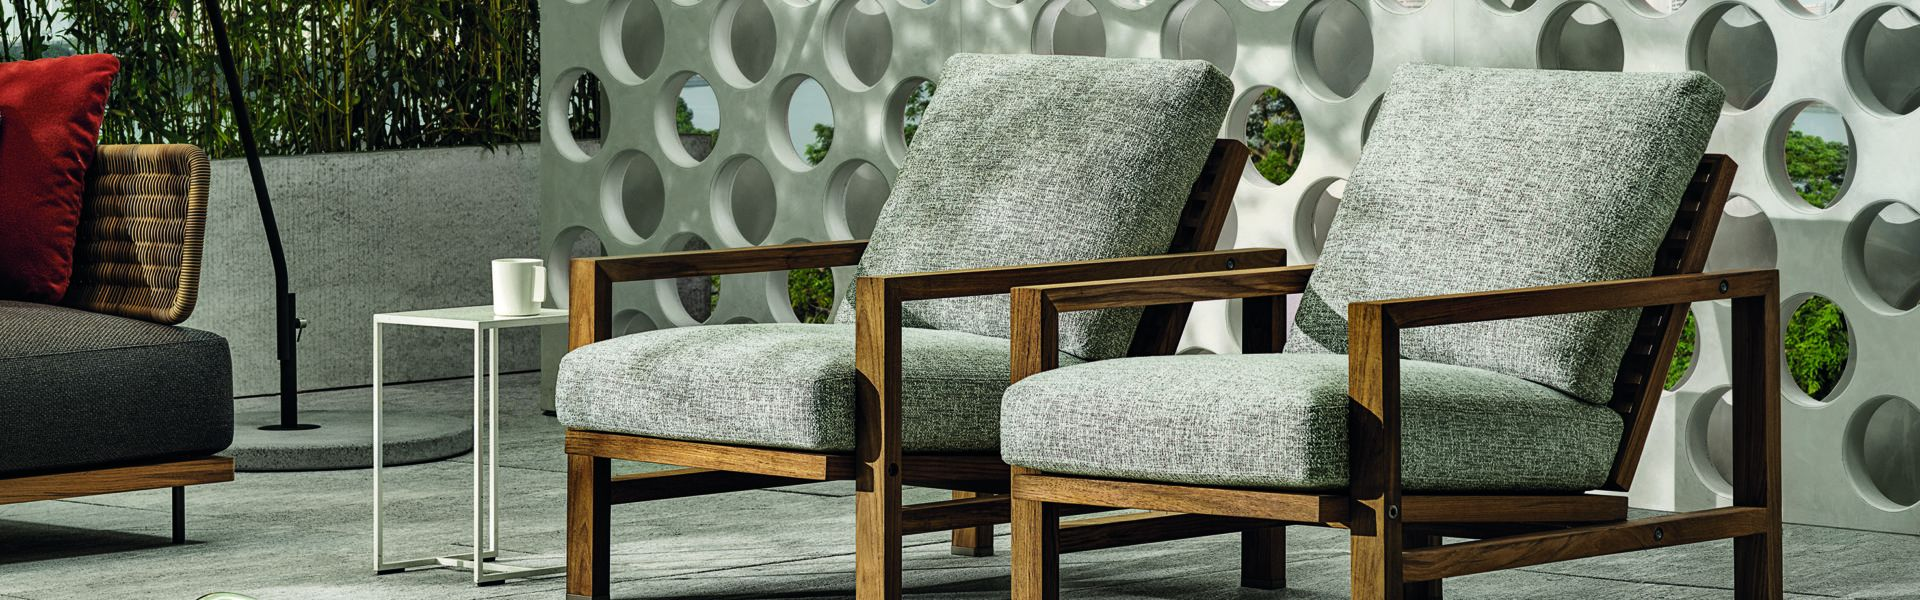 "Quadrado ""Outdoor"" Armchair"